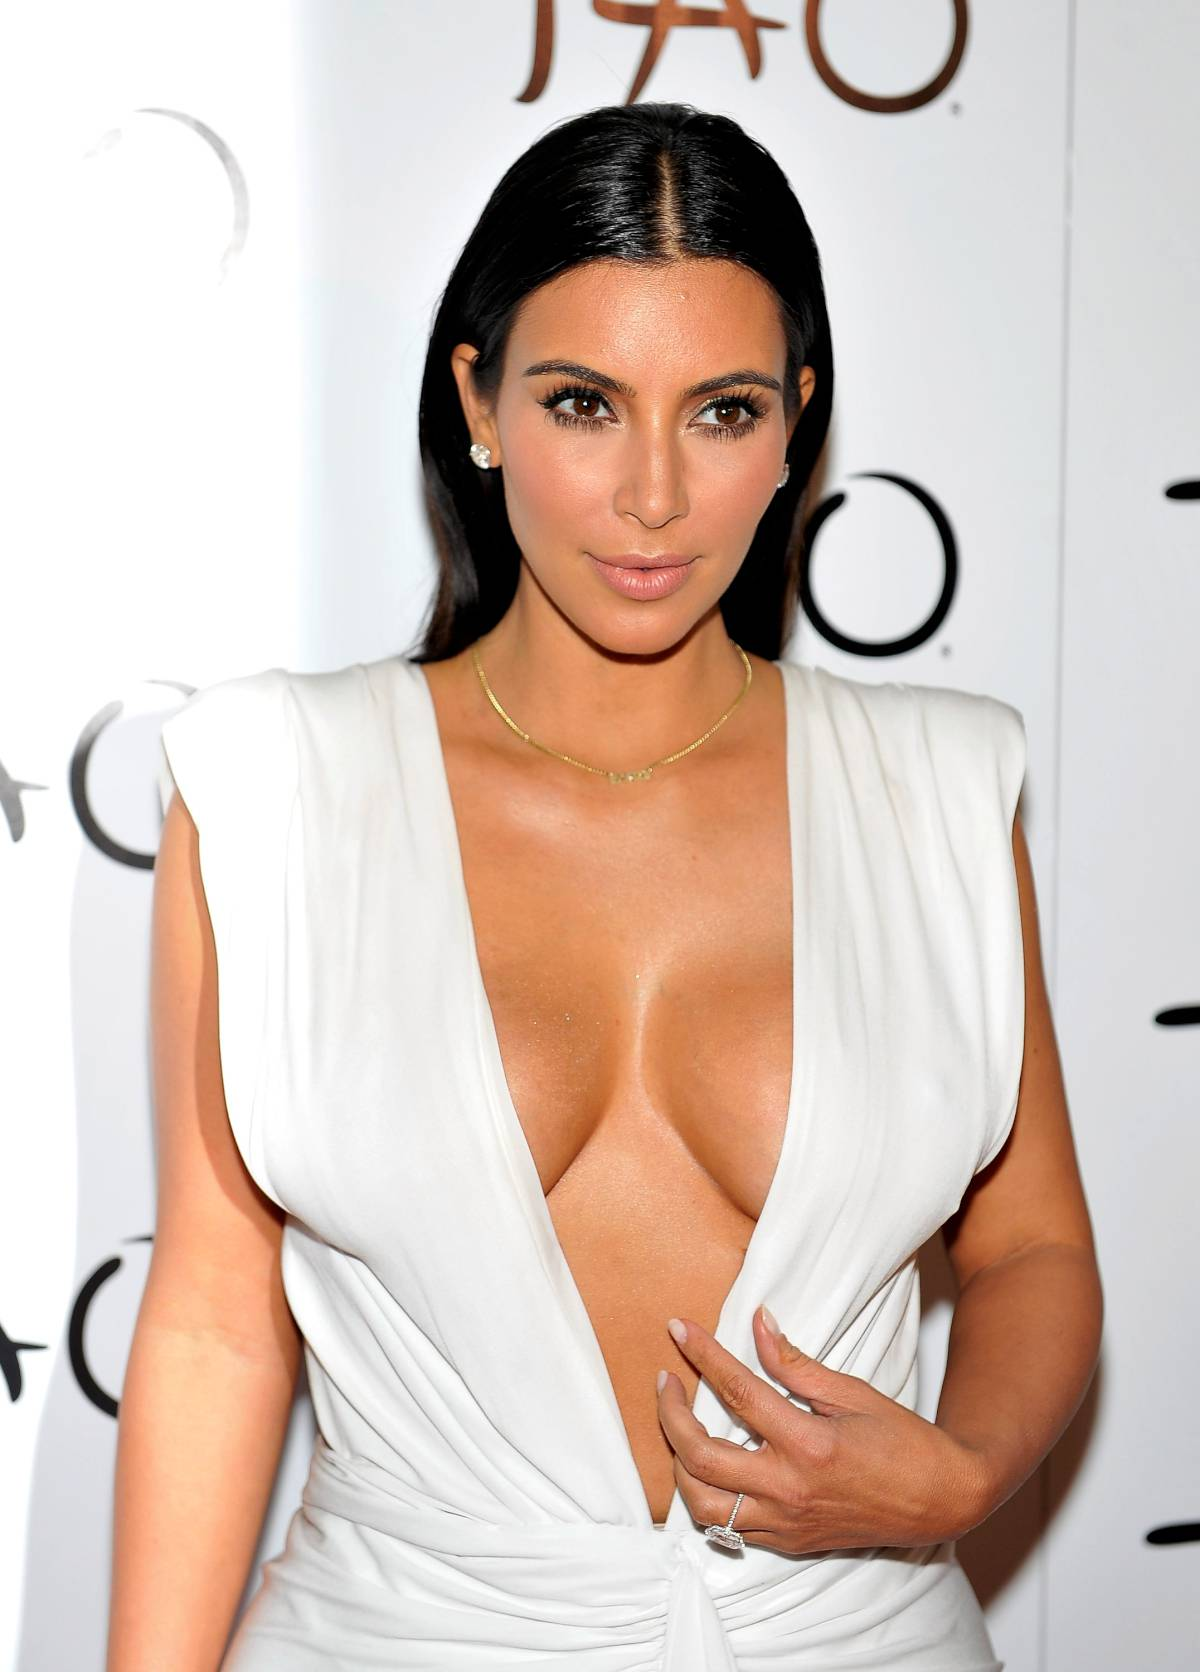 kim-kardashian-cleavage-tao-night-club-las-vegas-5.jpg